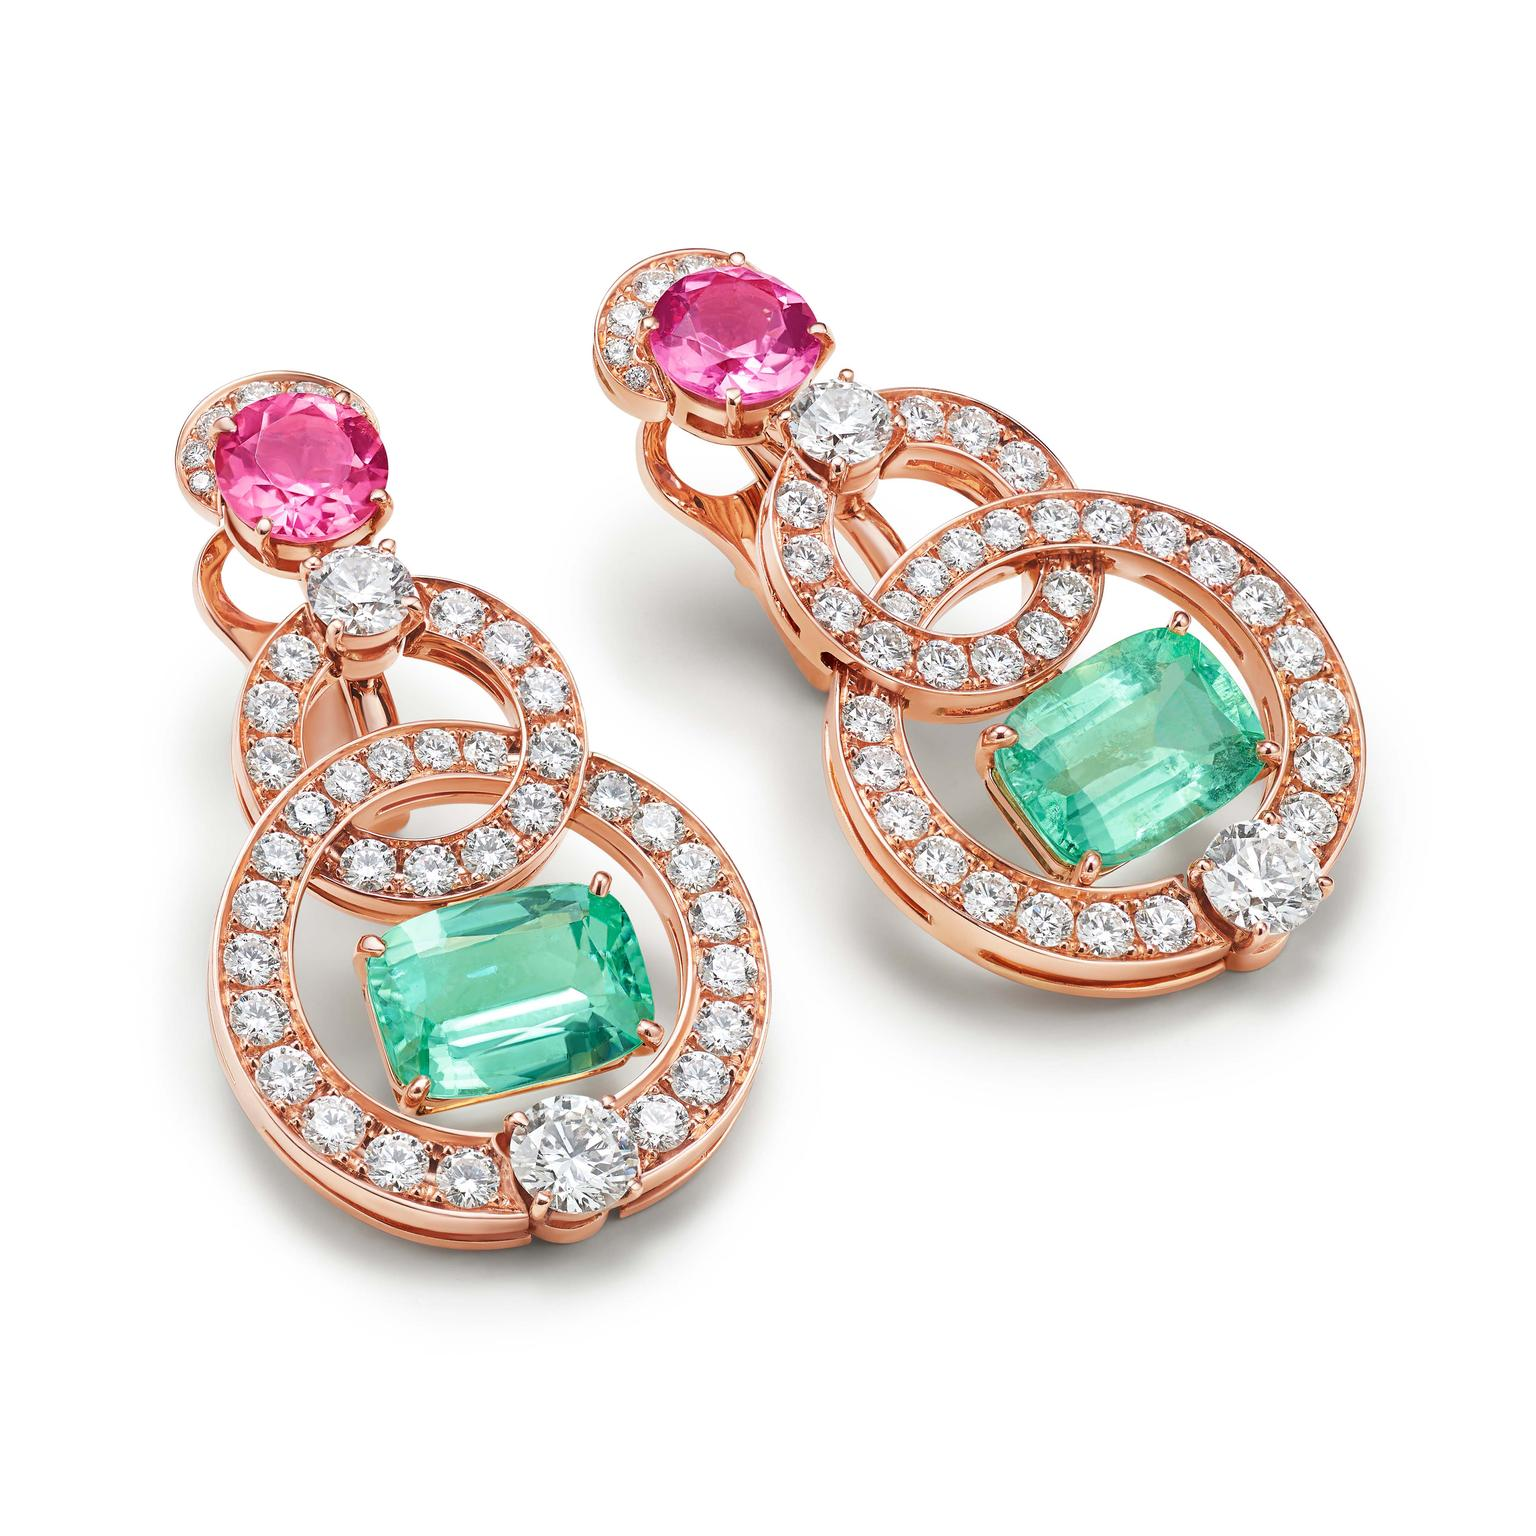 Minty green Paraiba tourmaline earrings by Bulgari